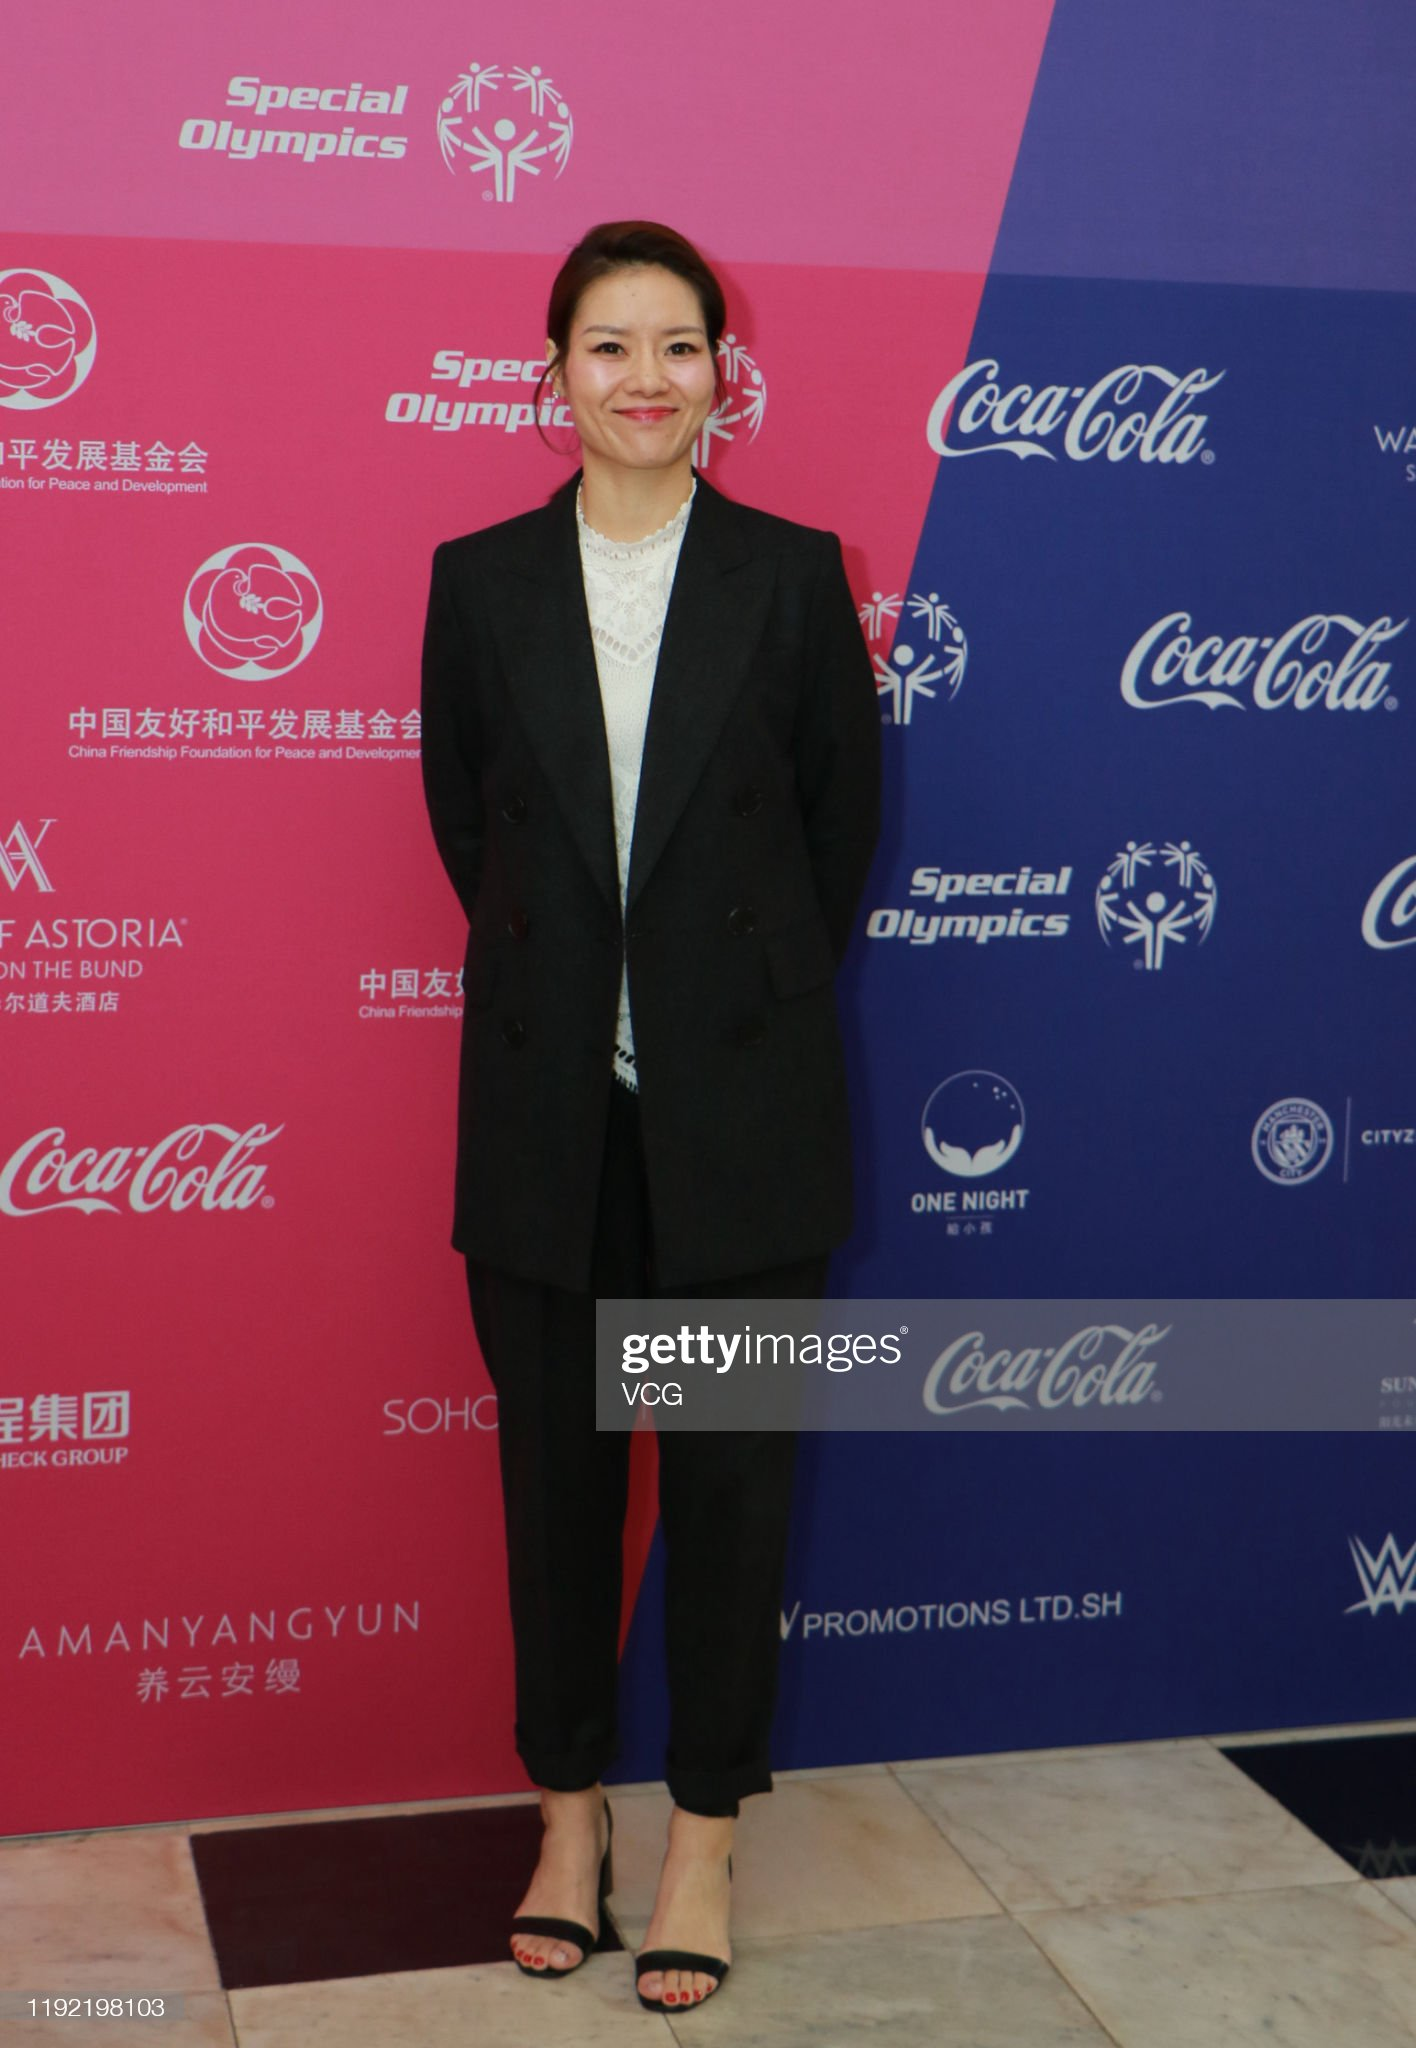 2019 Special Olympics Gala Dinner In Shanghai : News Photo